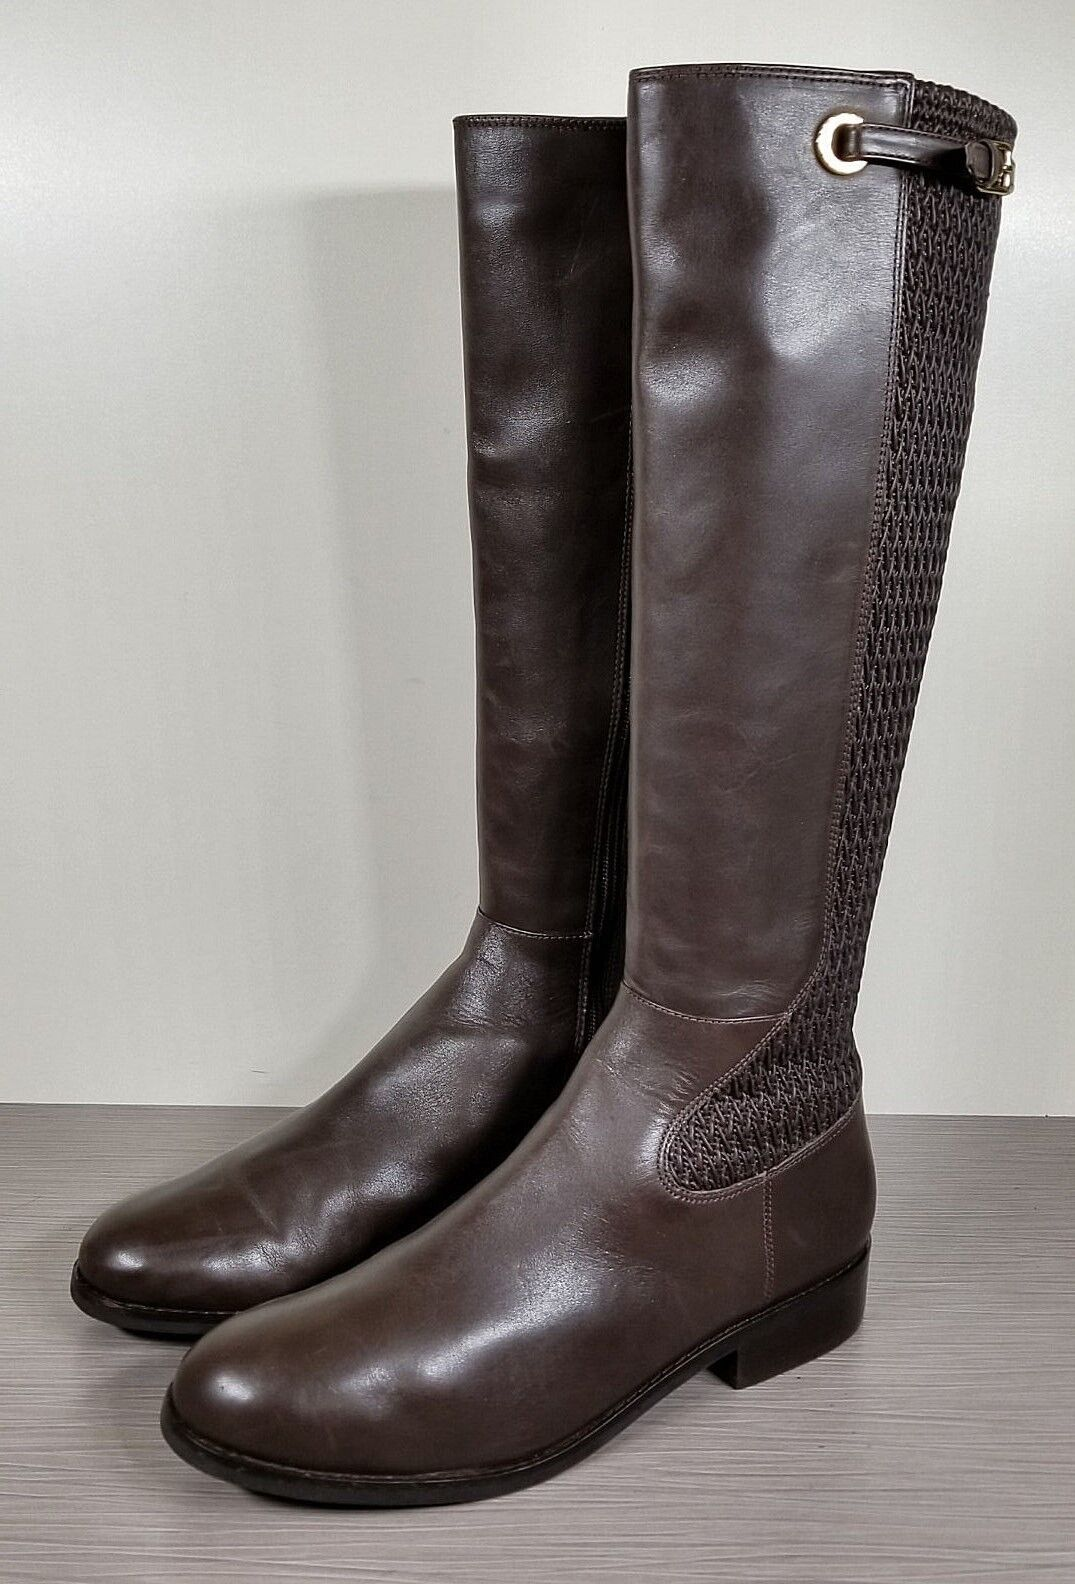 Cole Haan Simona Tall Boot, Java Leather, Womens Size 10 B